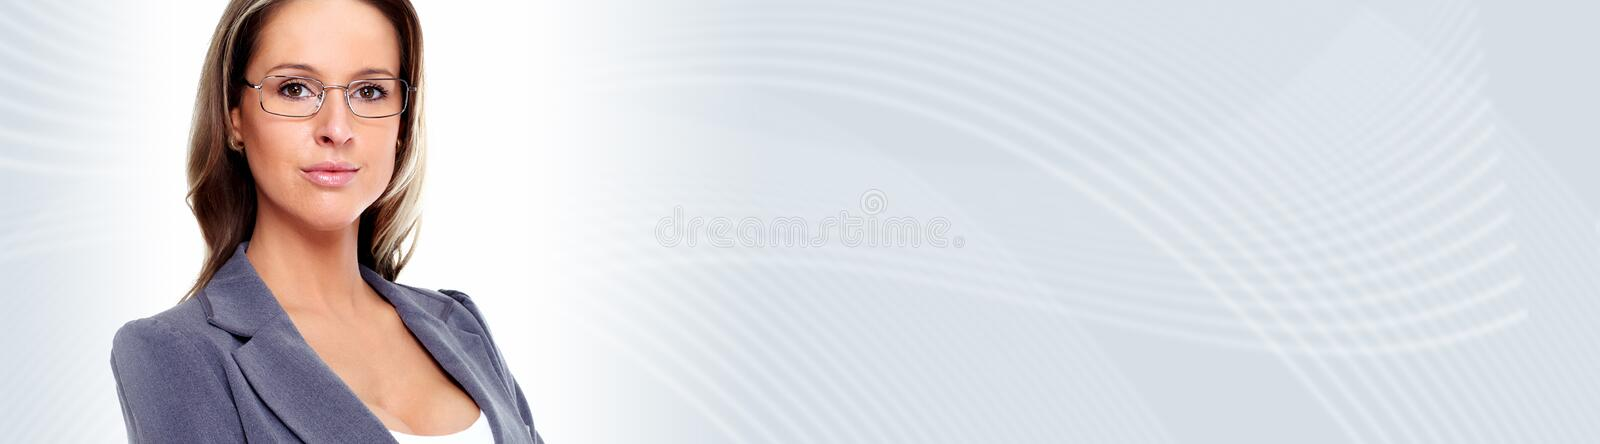 Young business woman. Beautiful young business woman over abstract background royalty free stock images